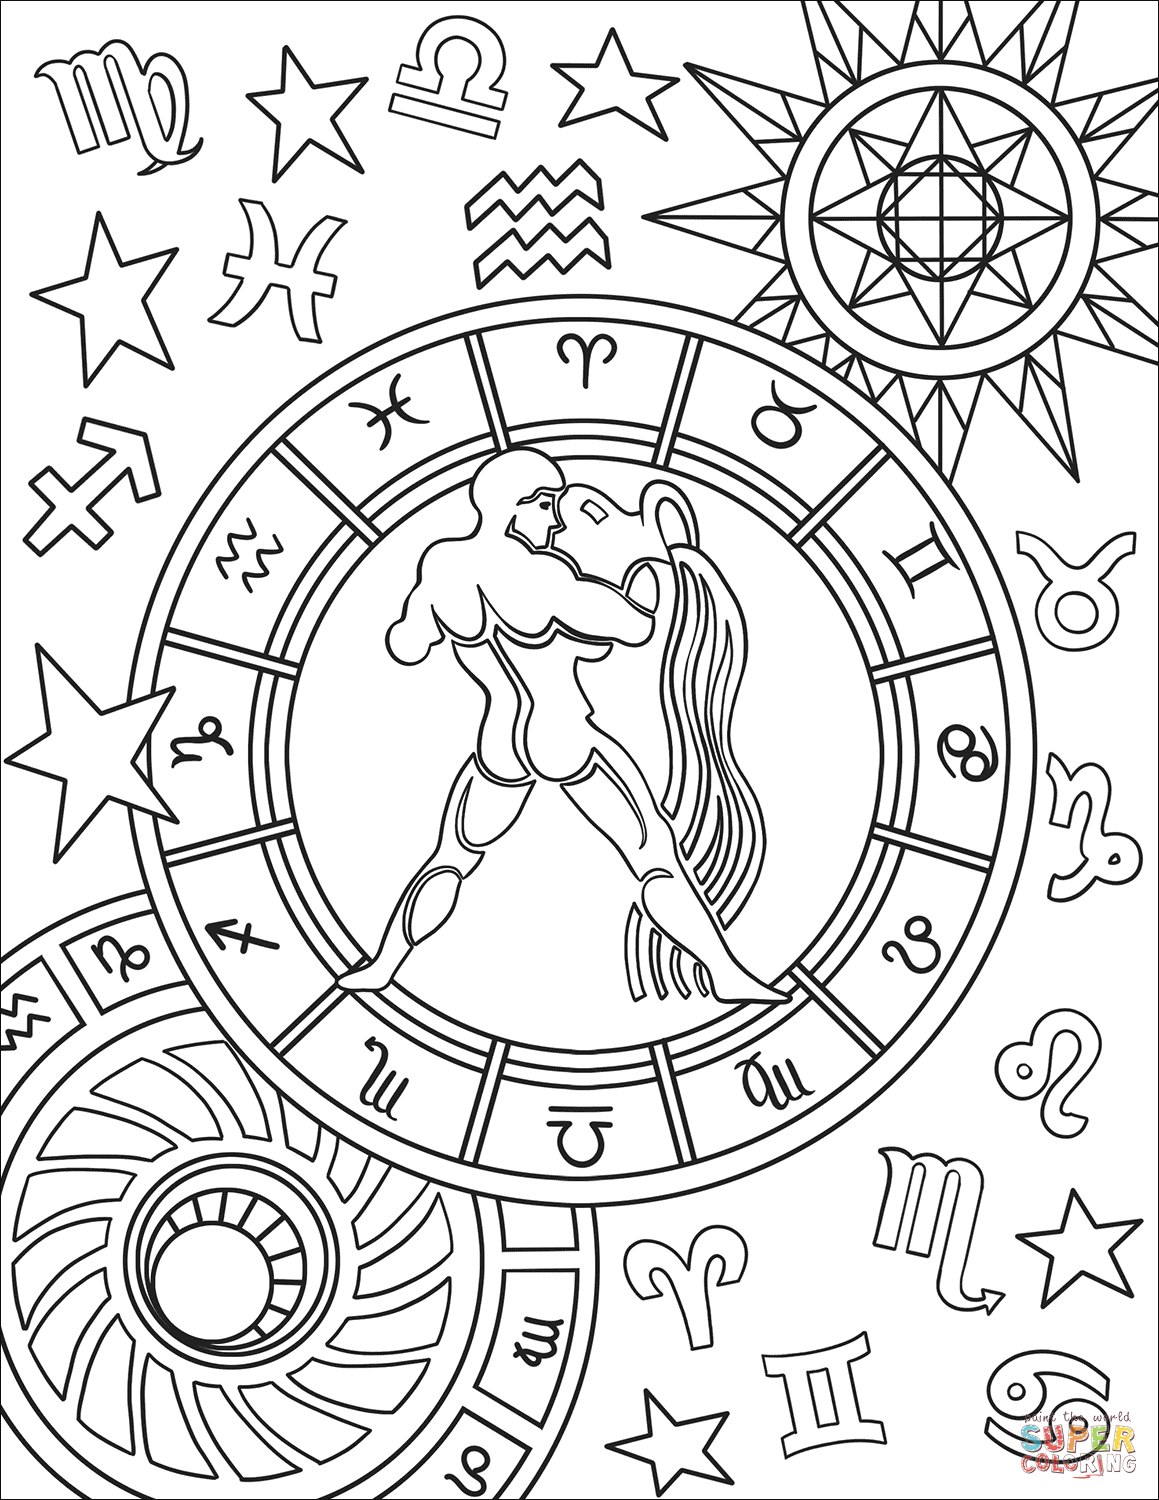 zodiac signs coloring pages free download zodiac sign taurus coloring pages coloring zodiac coloring signs pages